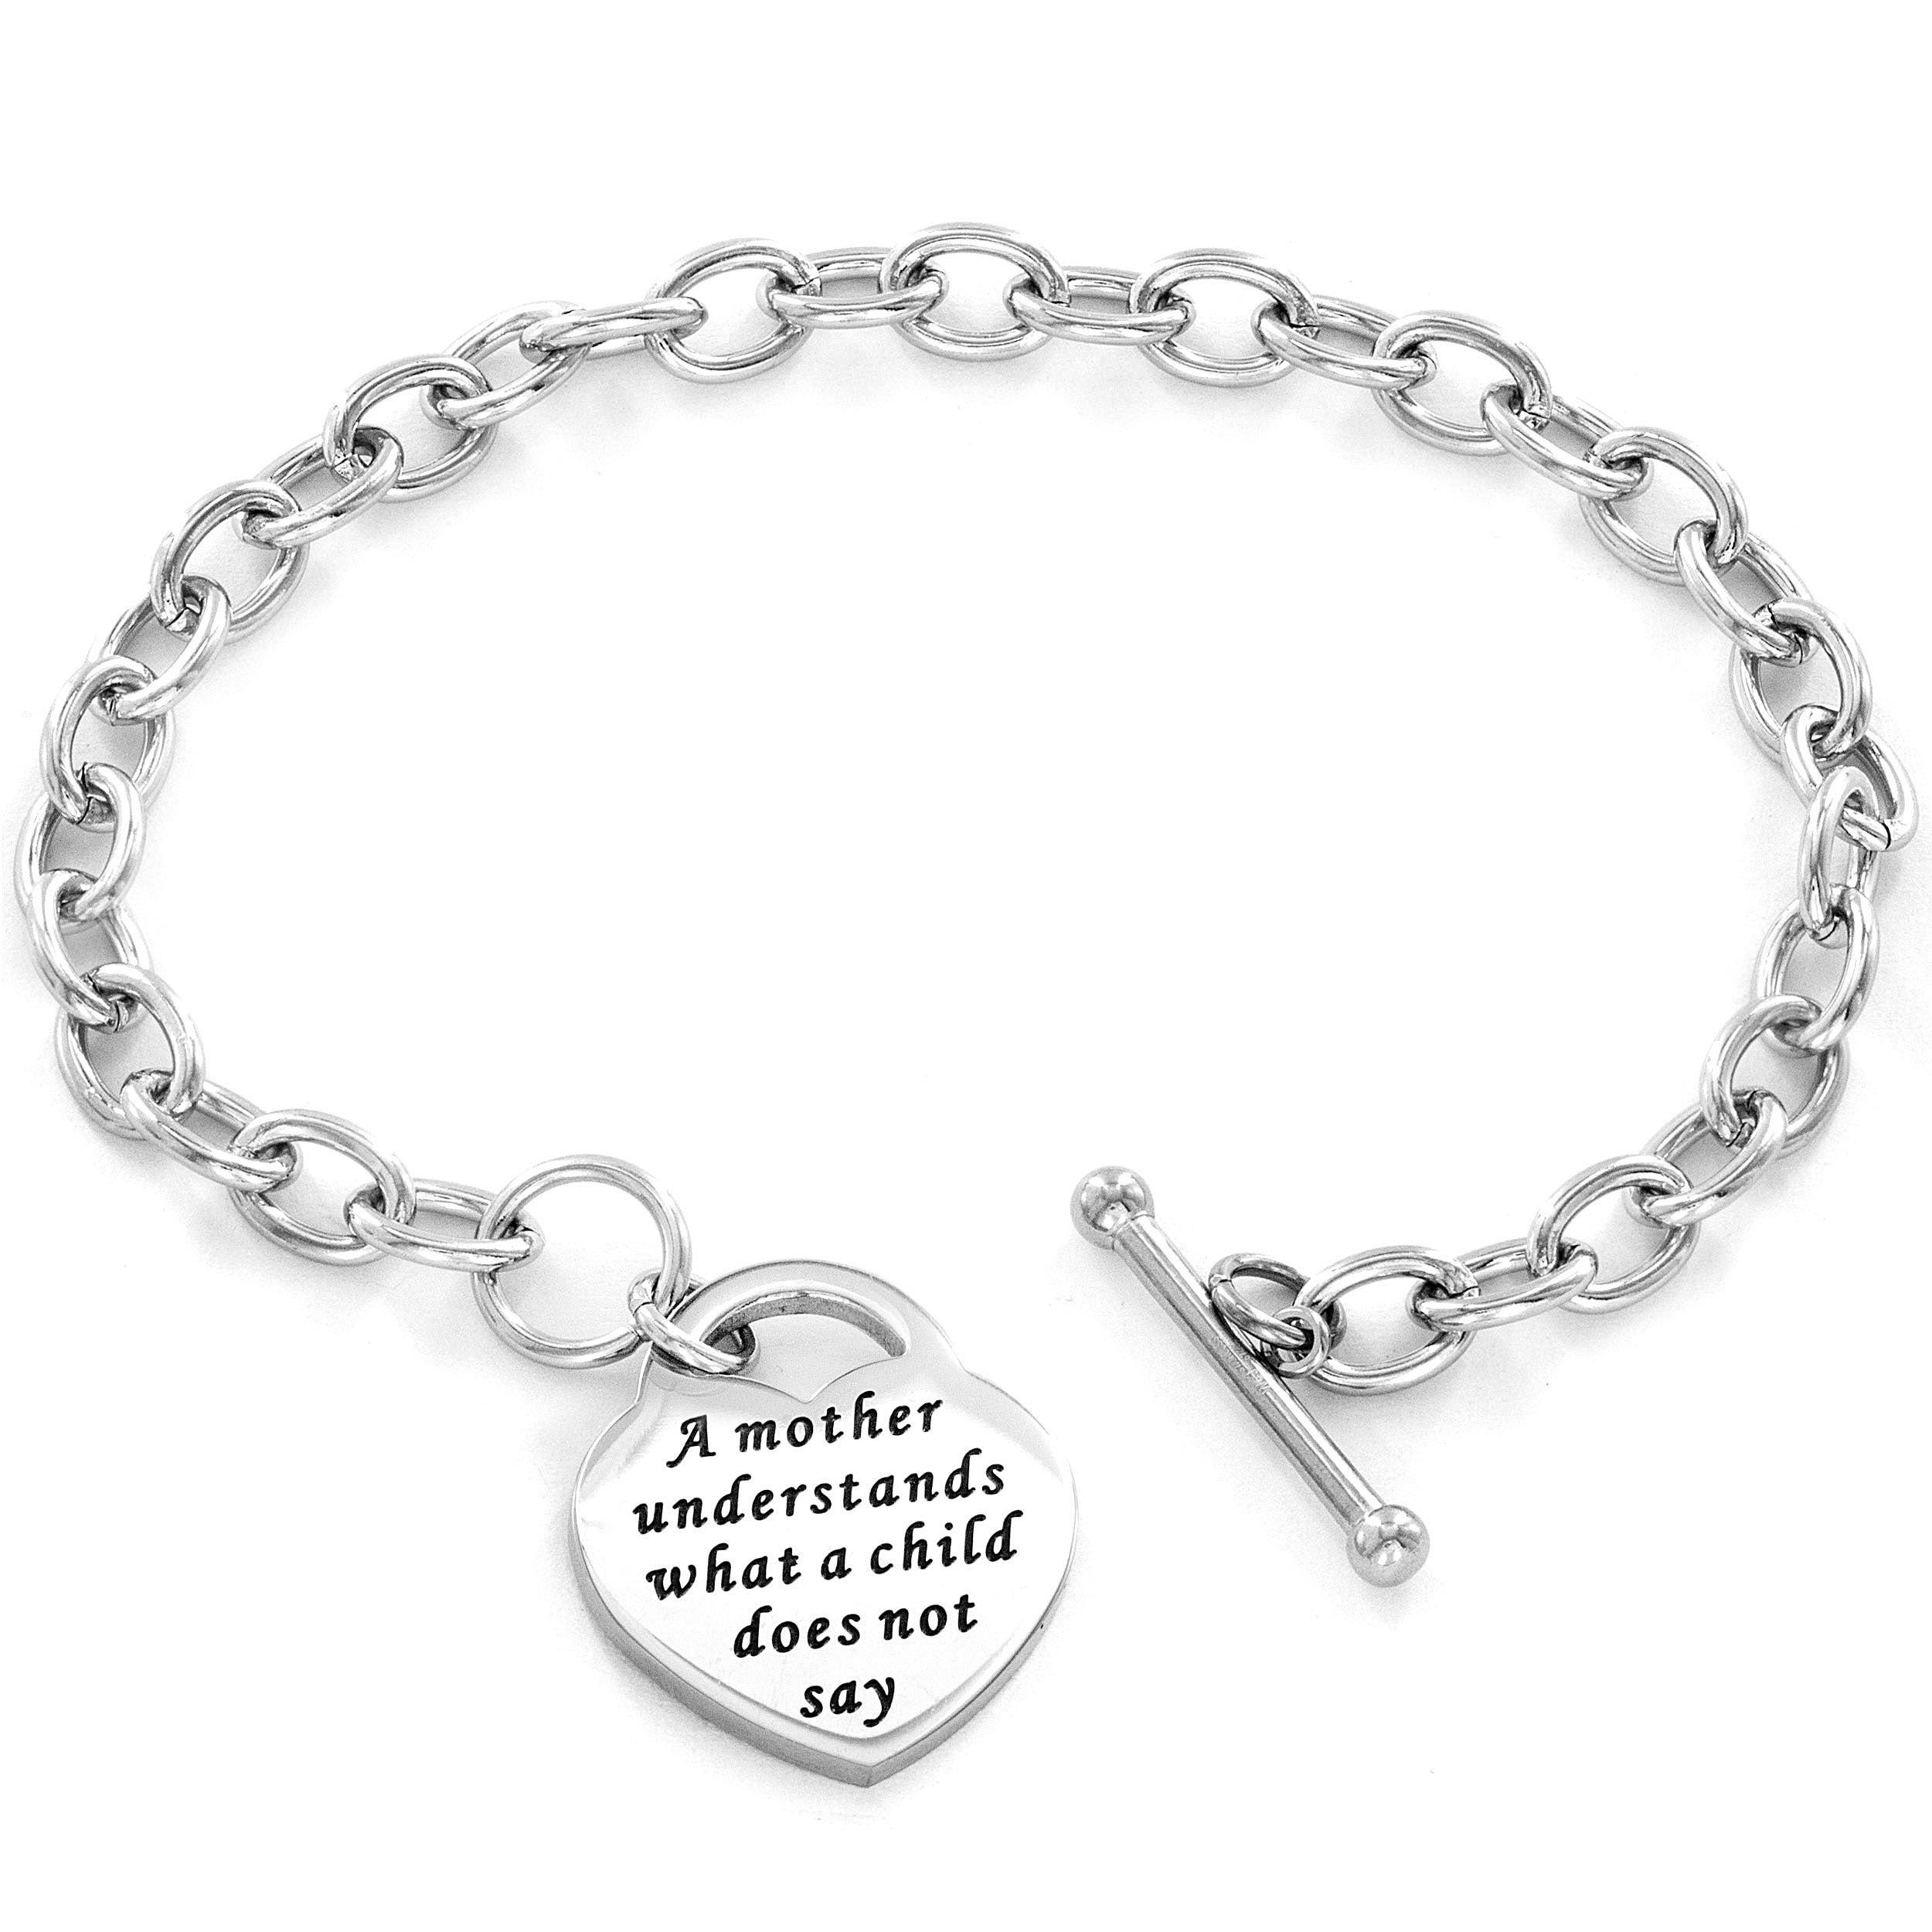 pin for grandchild grandmother gifts personalized grammy grandma bracelets gift bracelet